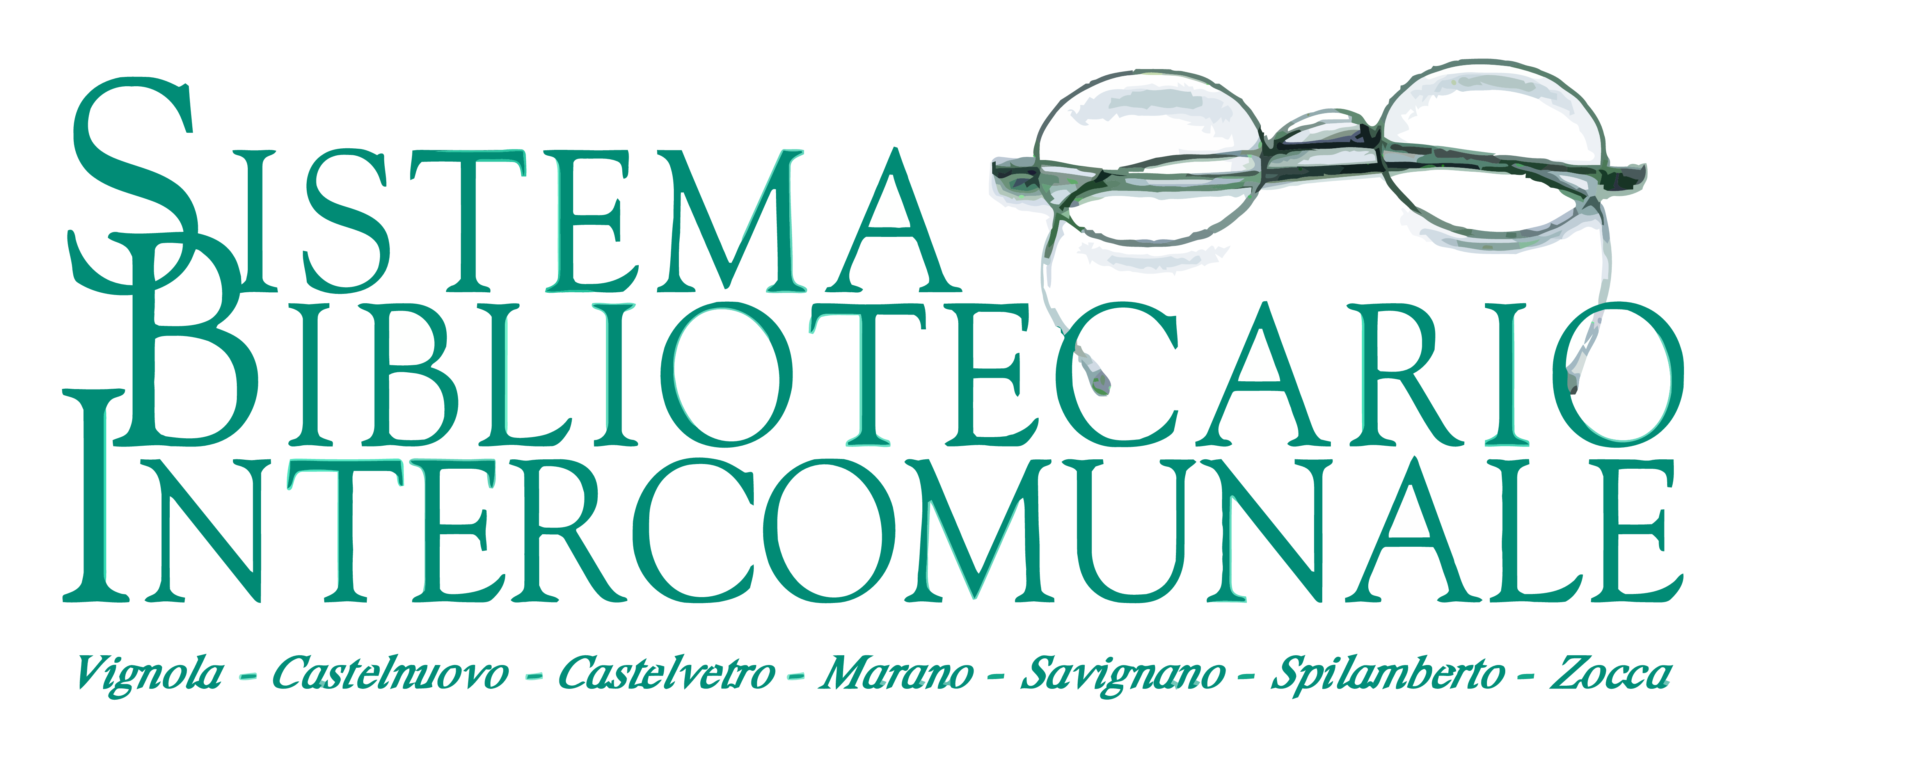 Sistema Bibliotecario Intercomunale